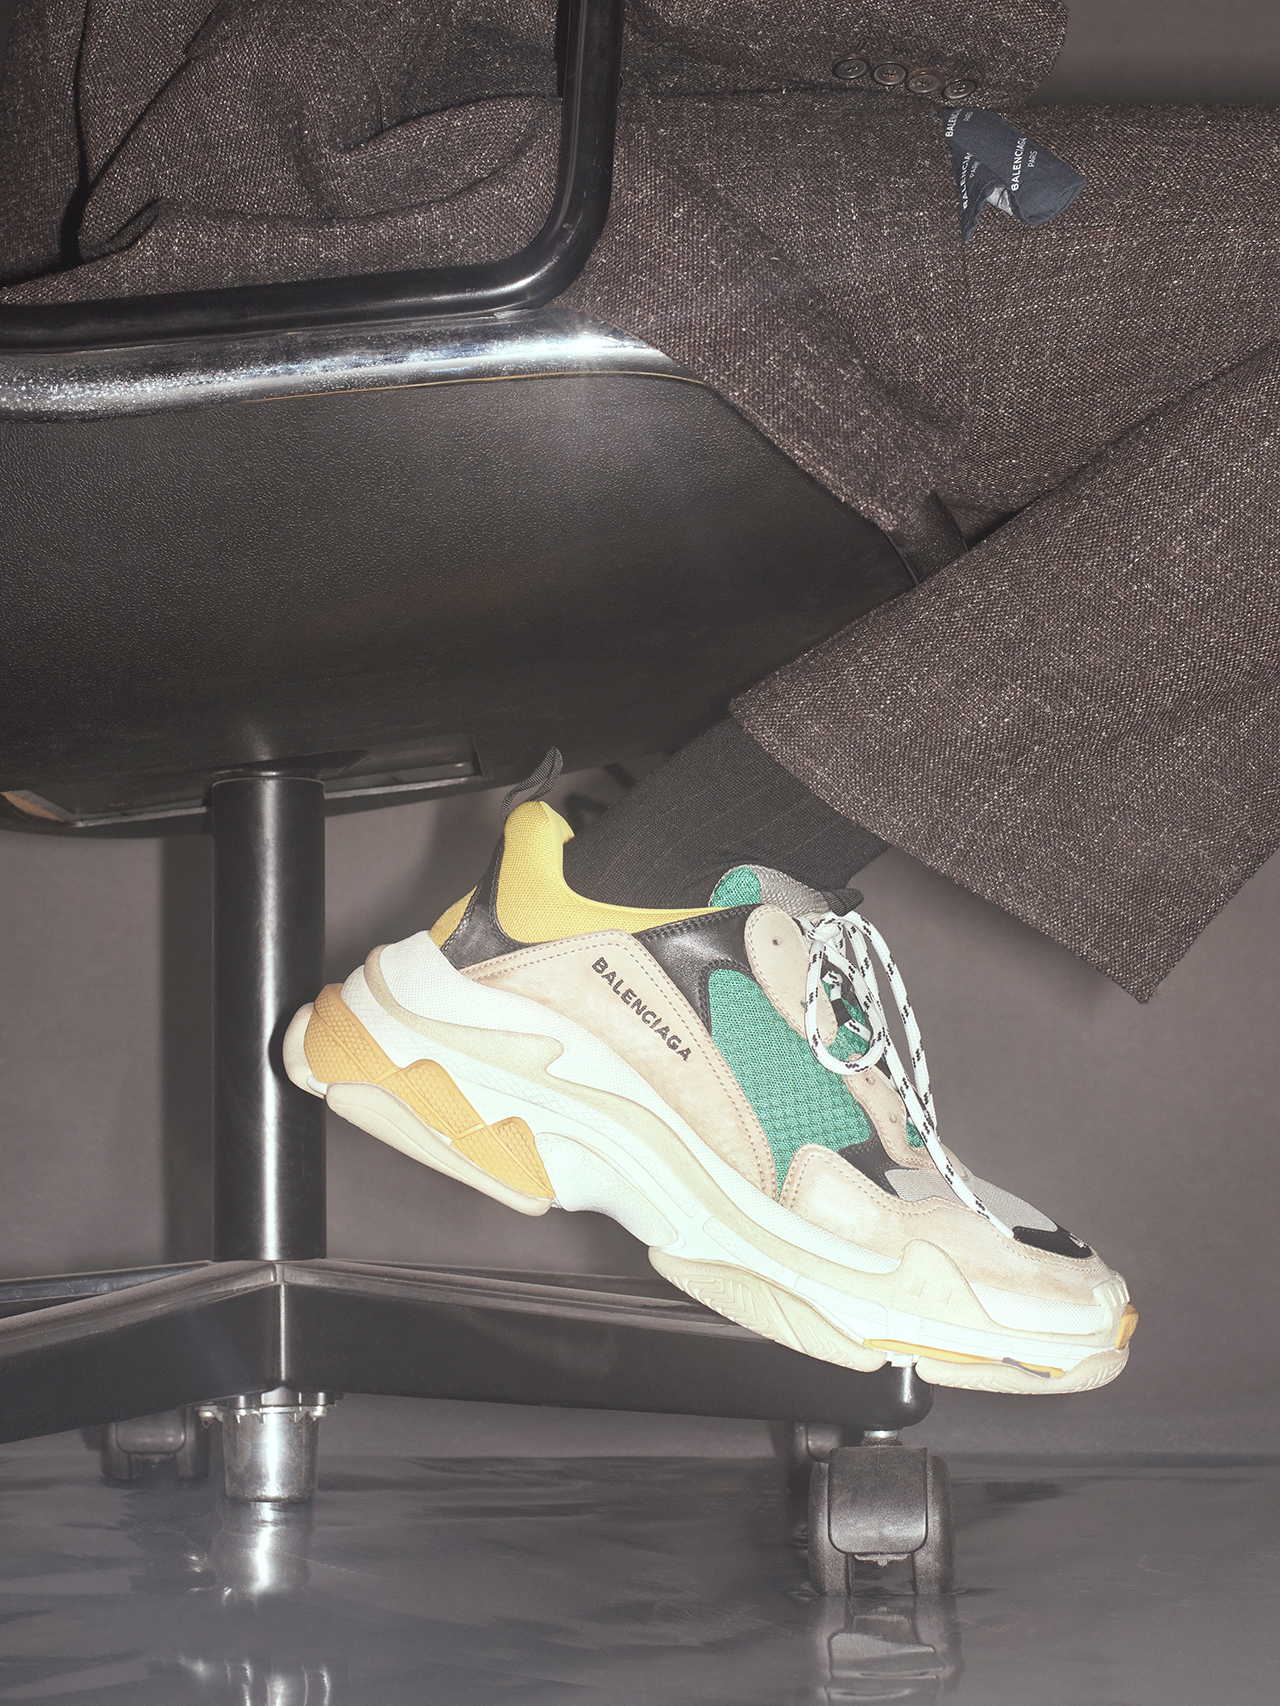 「TRIPLE S」| Courtesy of BALENCIAGA